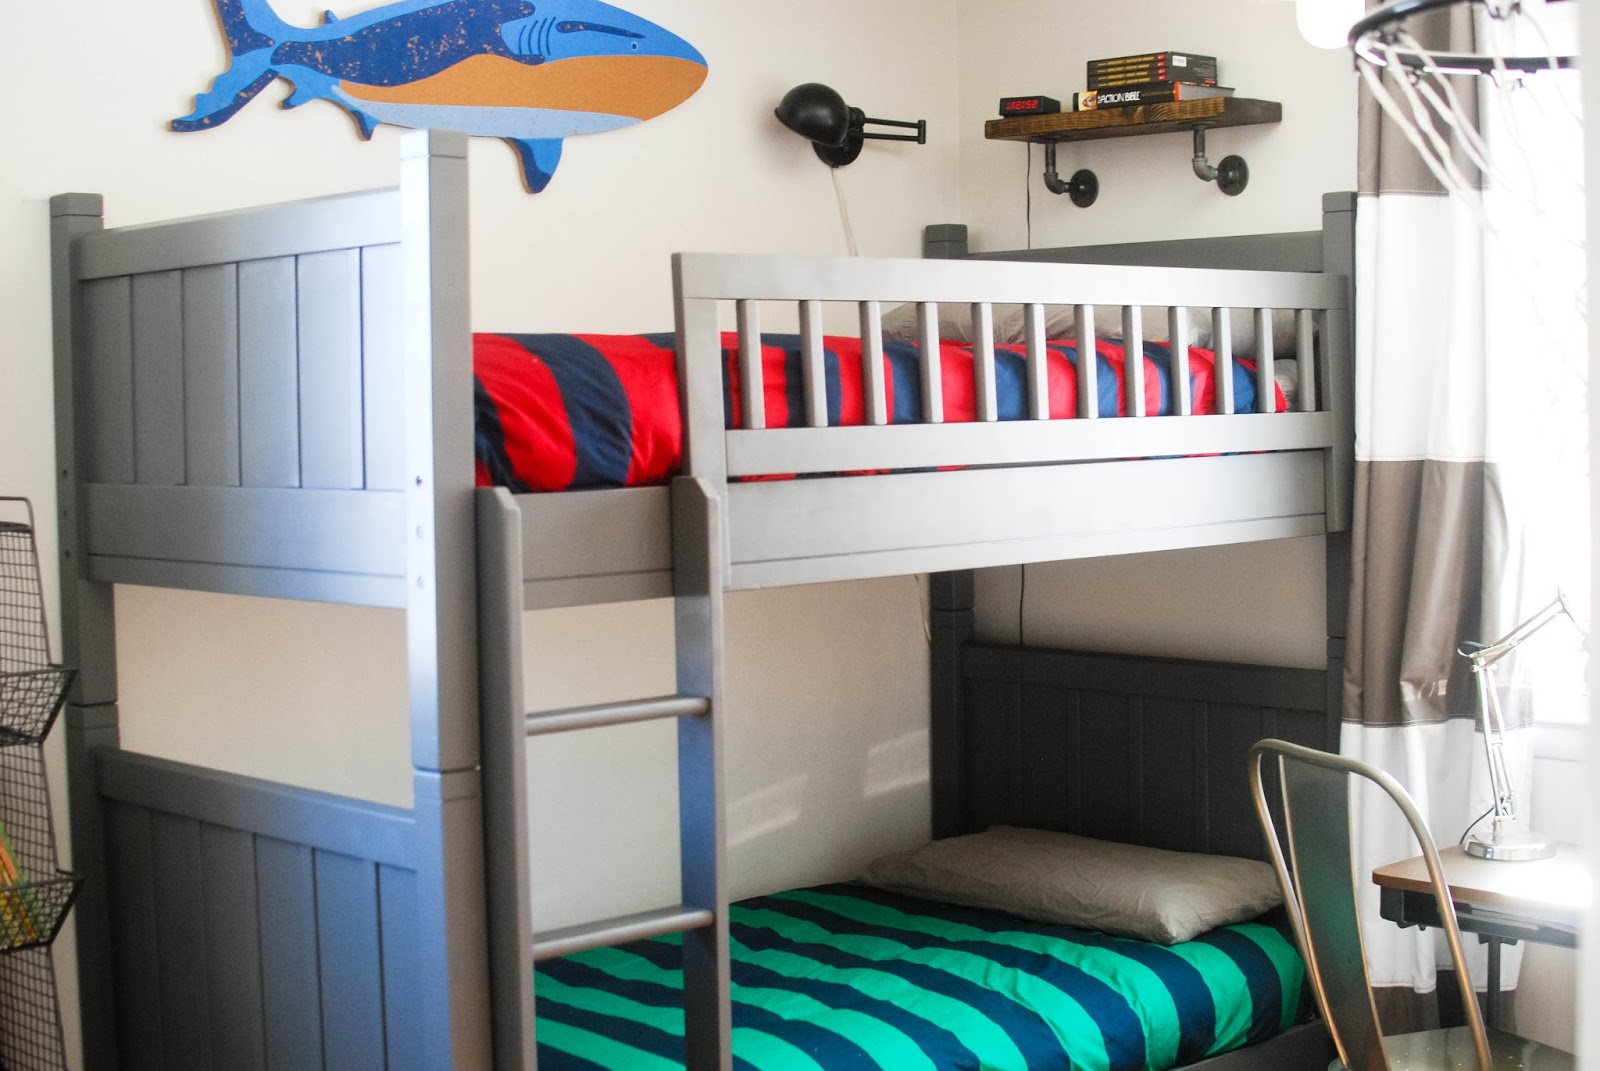 Trend Previously their bunk beds were navy blue but I wanted them to be a moody gray so I bit the bullet and spent a weekend painting them